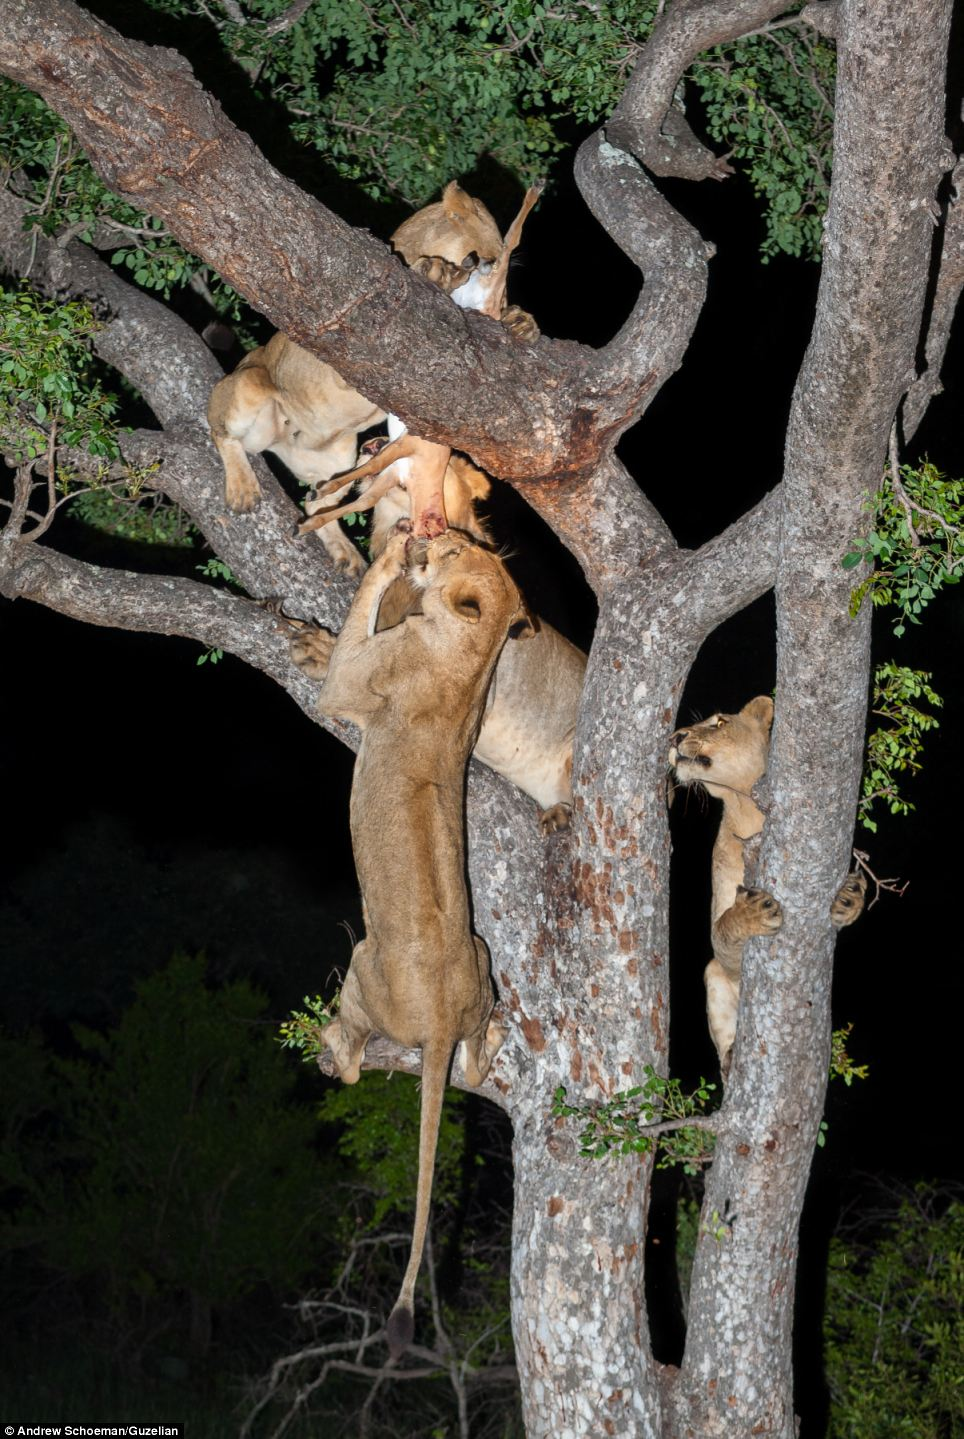 Wildlife: The photographs were taken by wildlife photographer Andrew Schoeman, who described the lions as comical as they struggled to balance as they attempted to take the impala for themselves